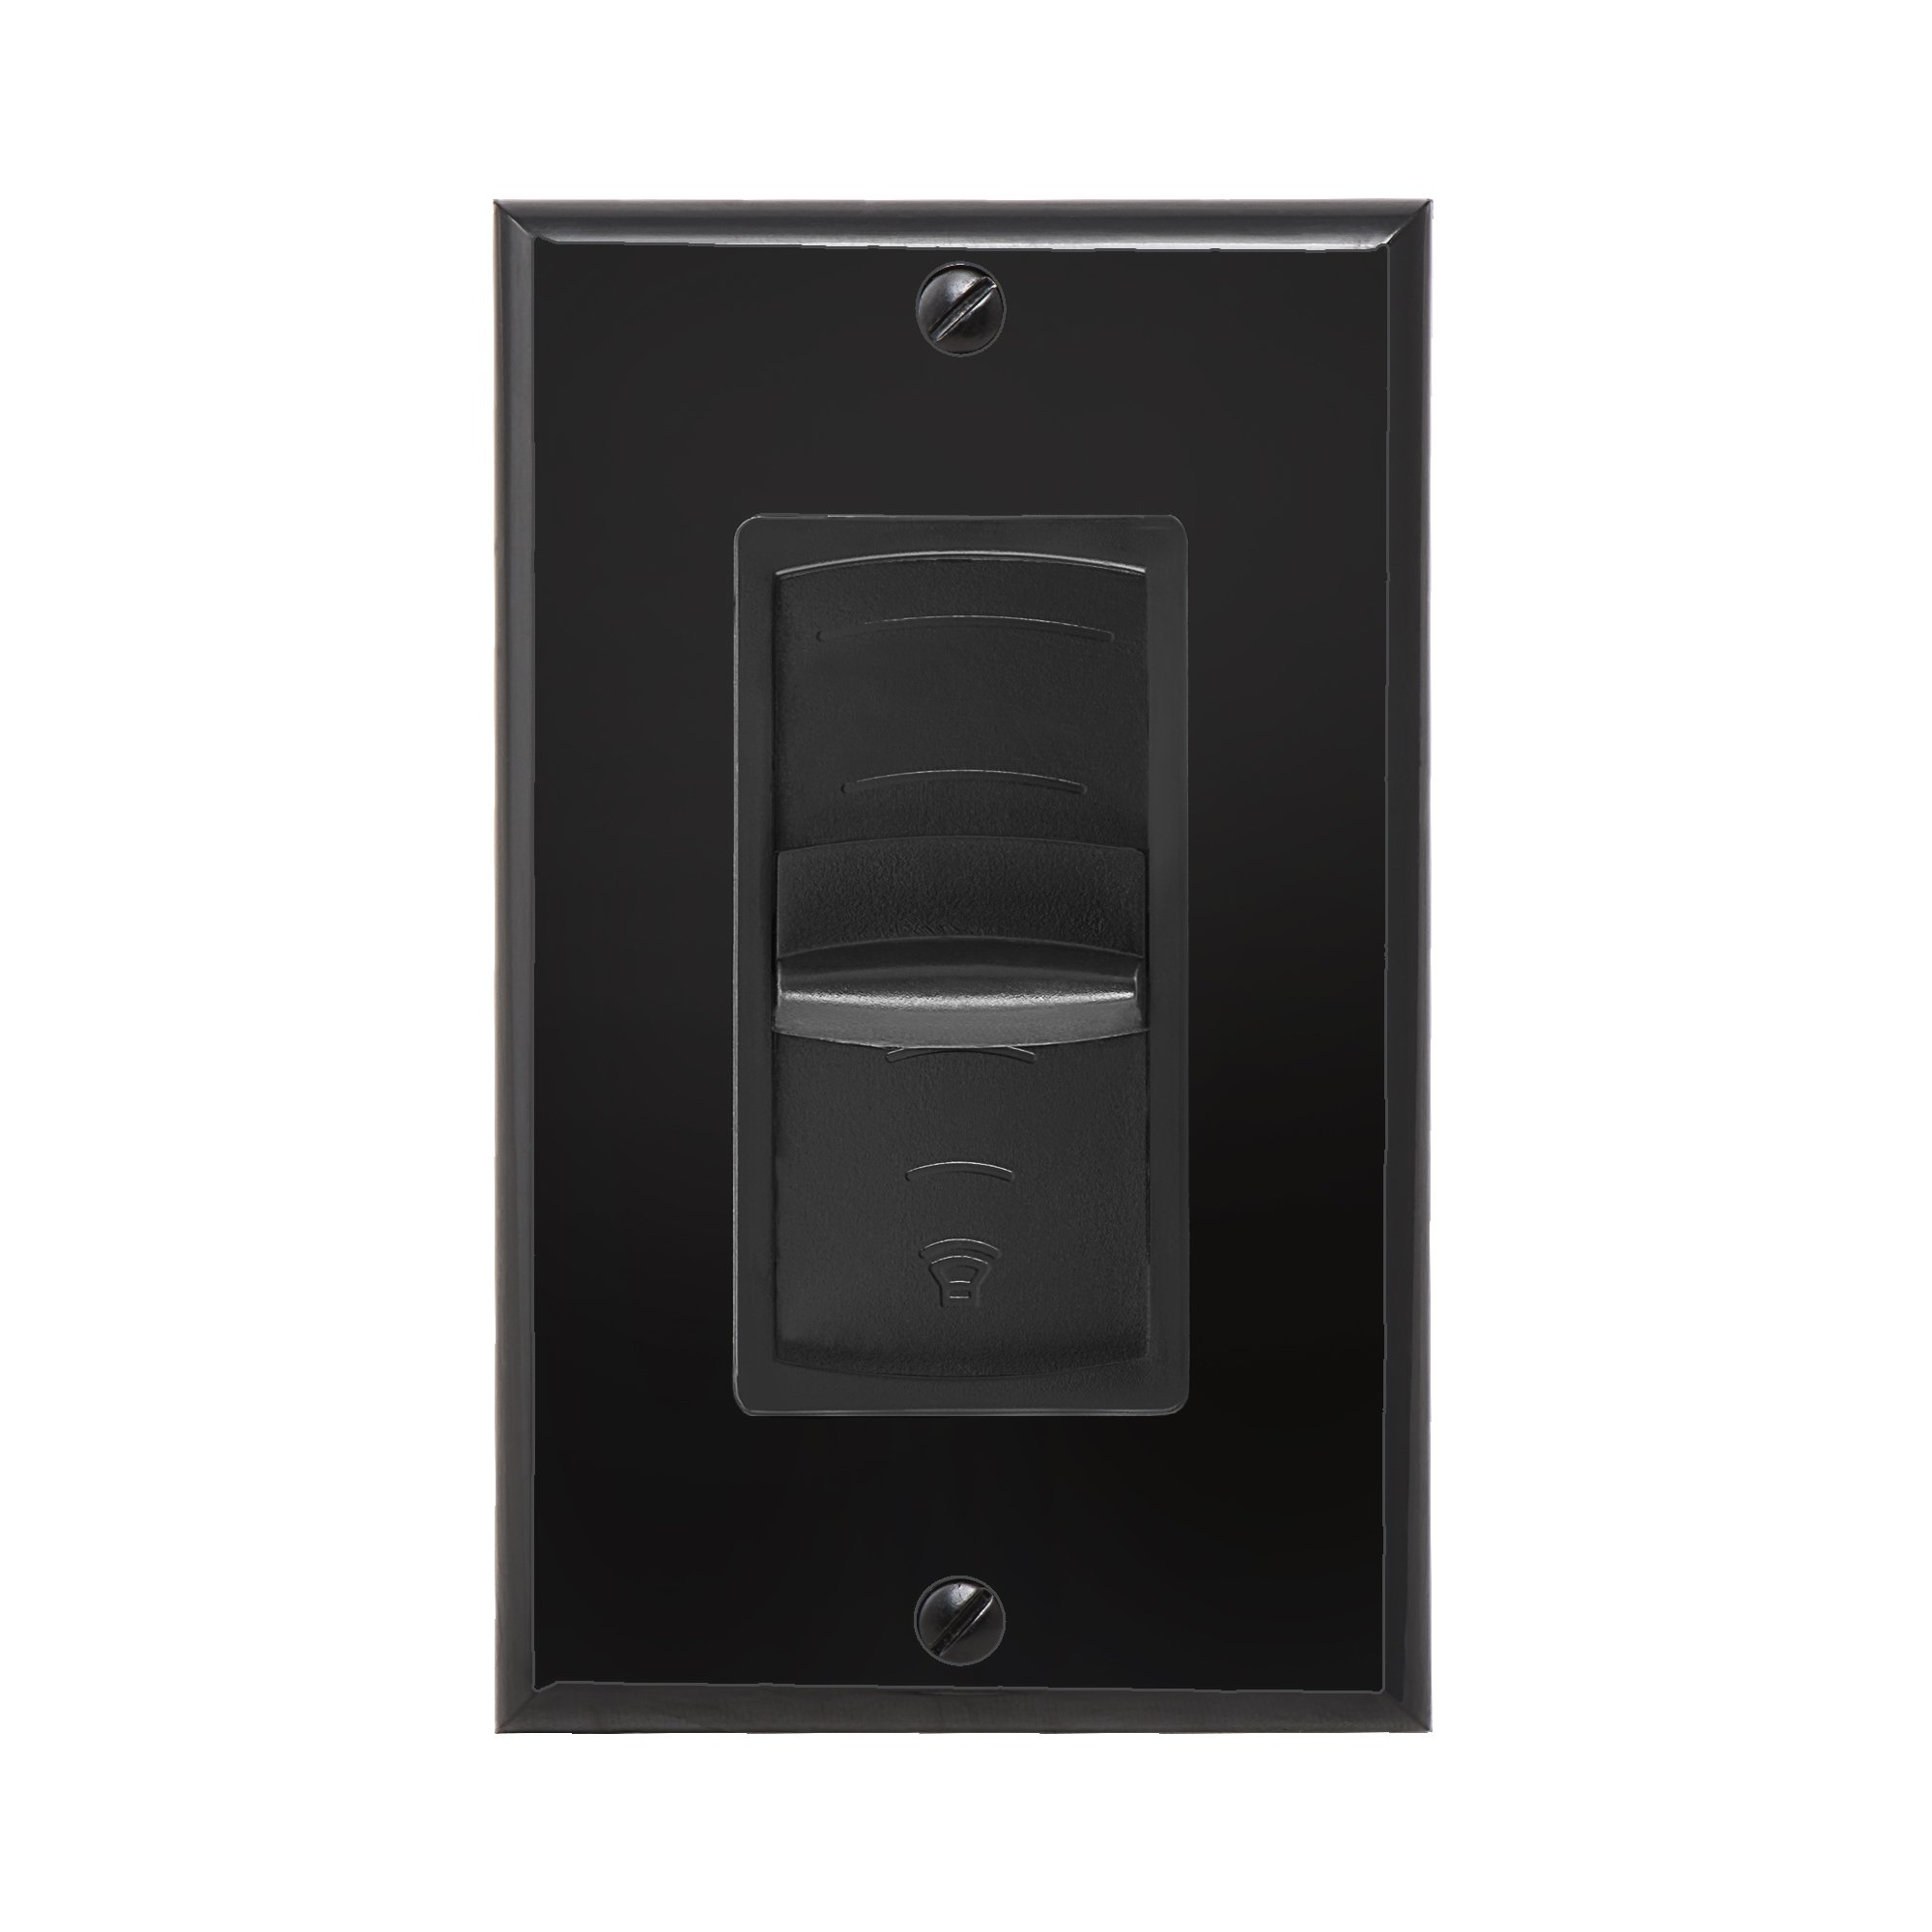 OSD Audio 300W in-Wall Home Theater Speaker – Volume Control Switch - VMS300